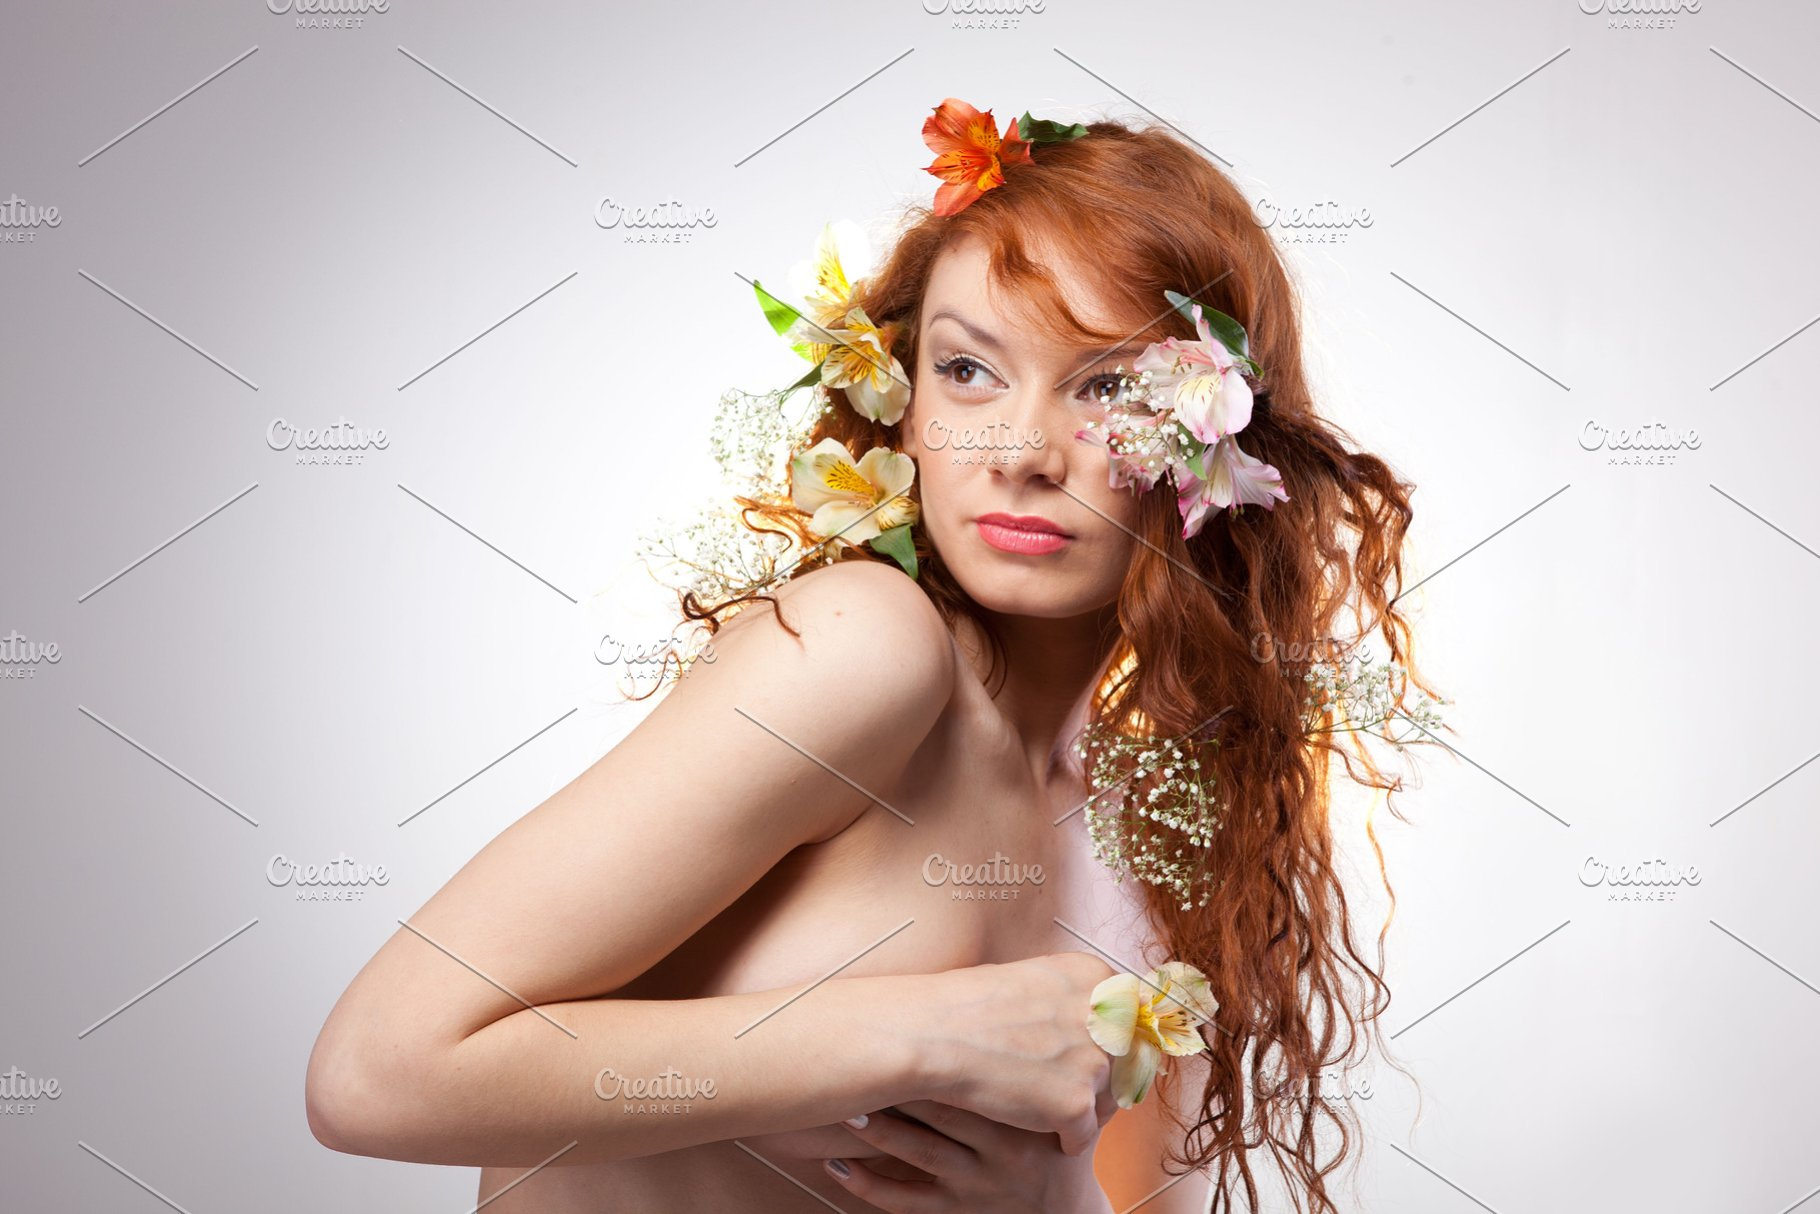 Portrait Of Beautiful Naked Woman High Quality People Images